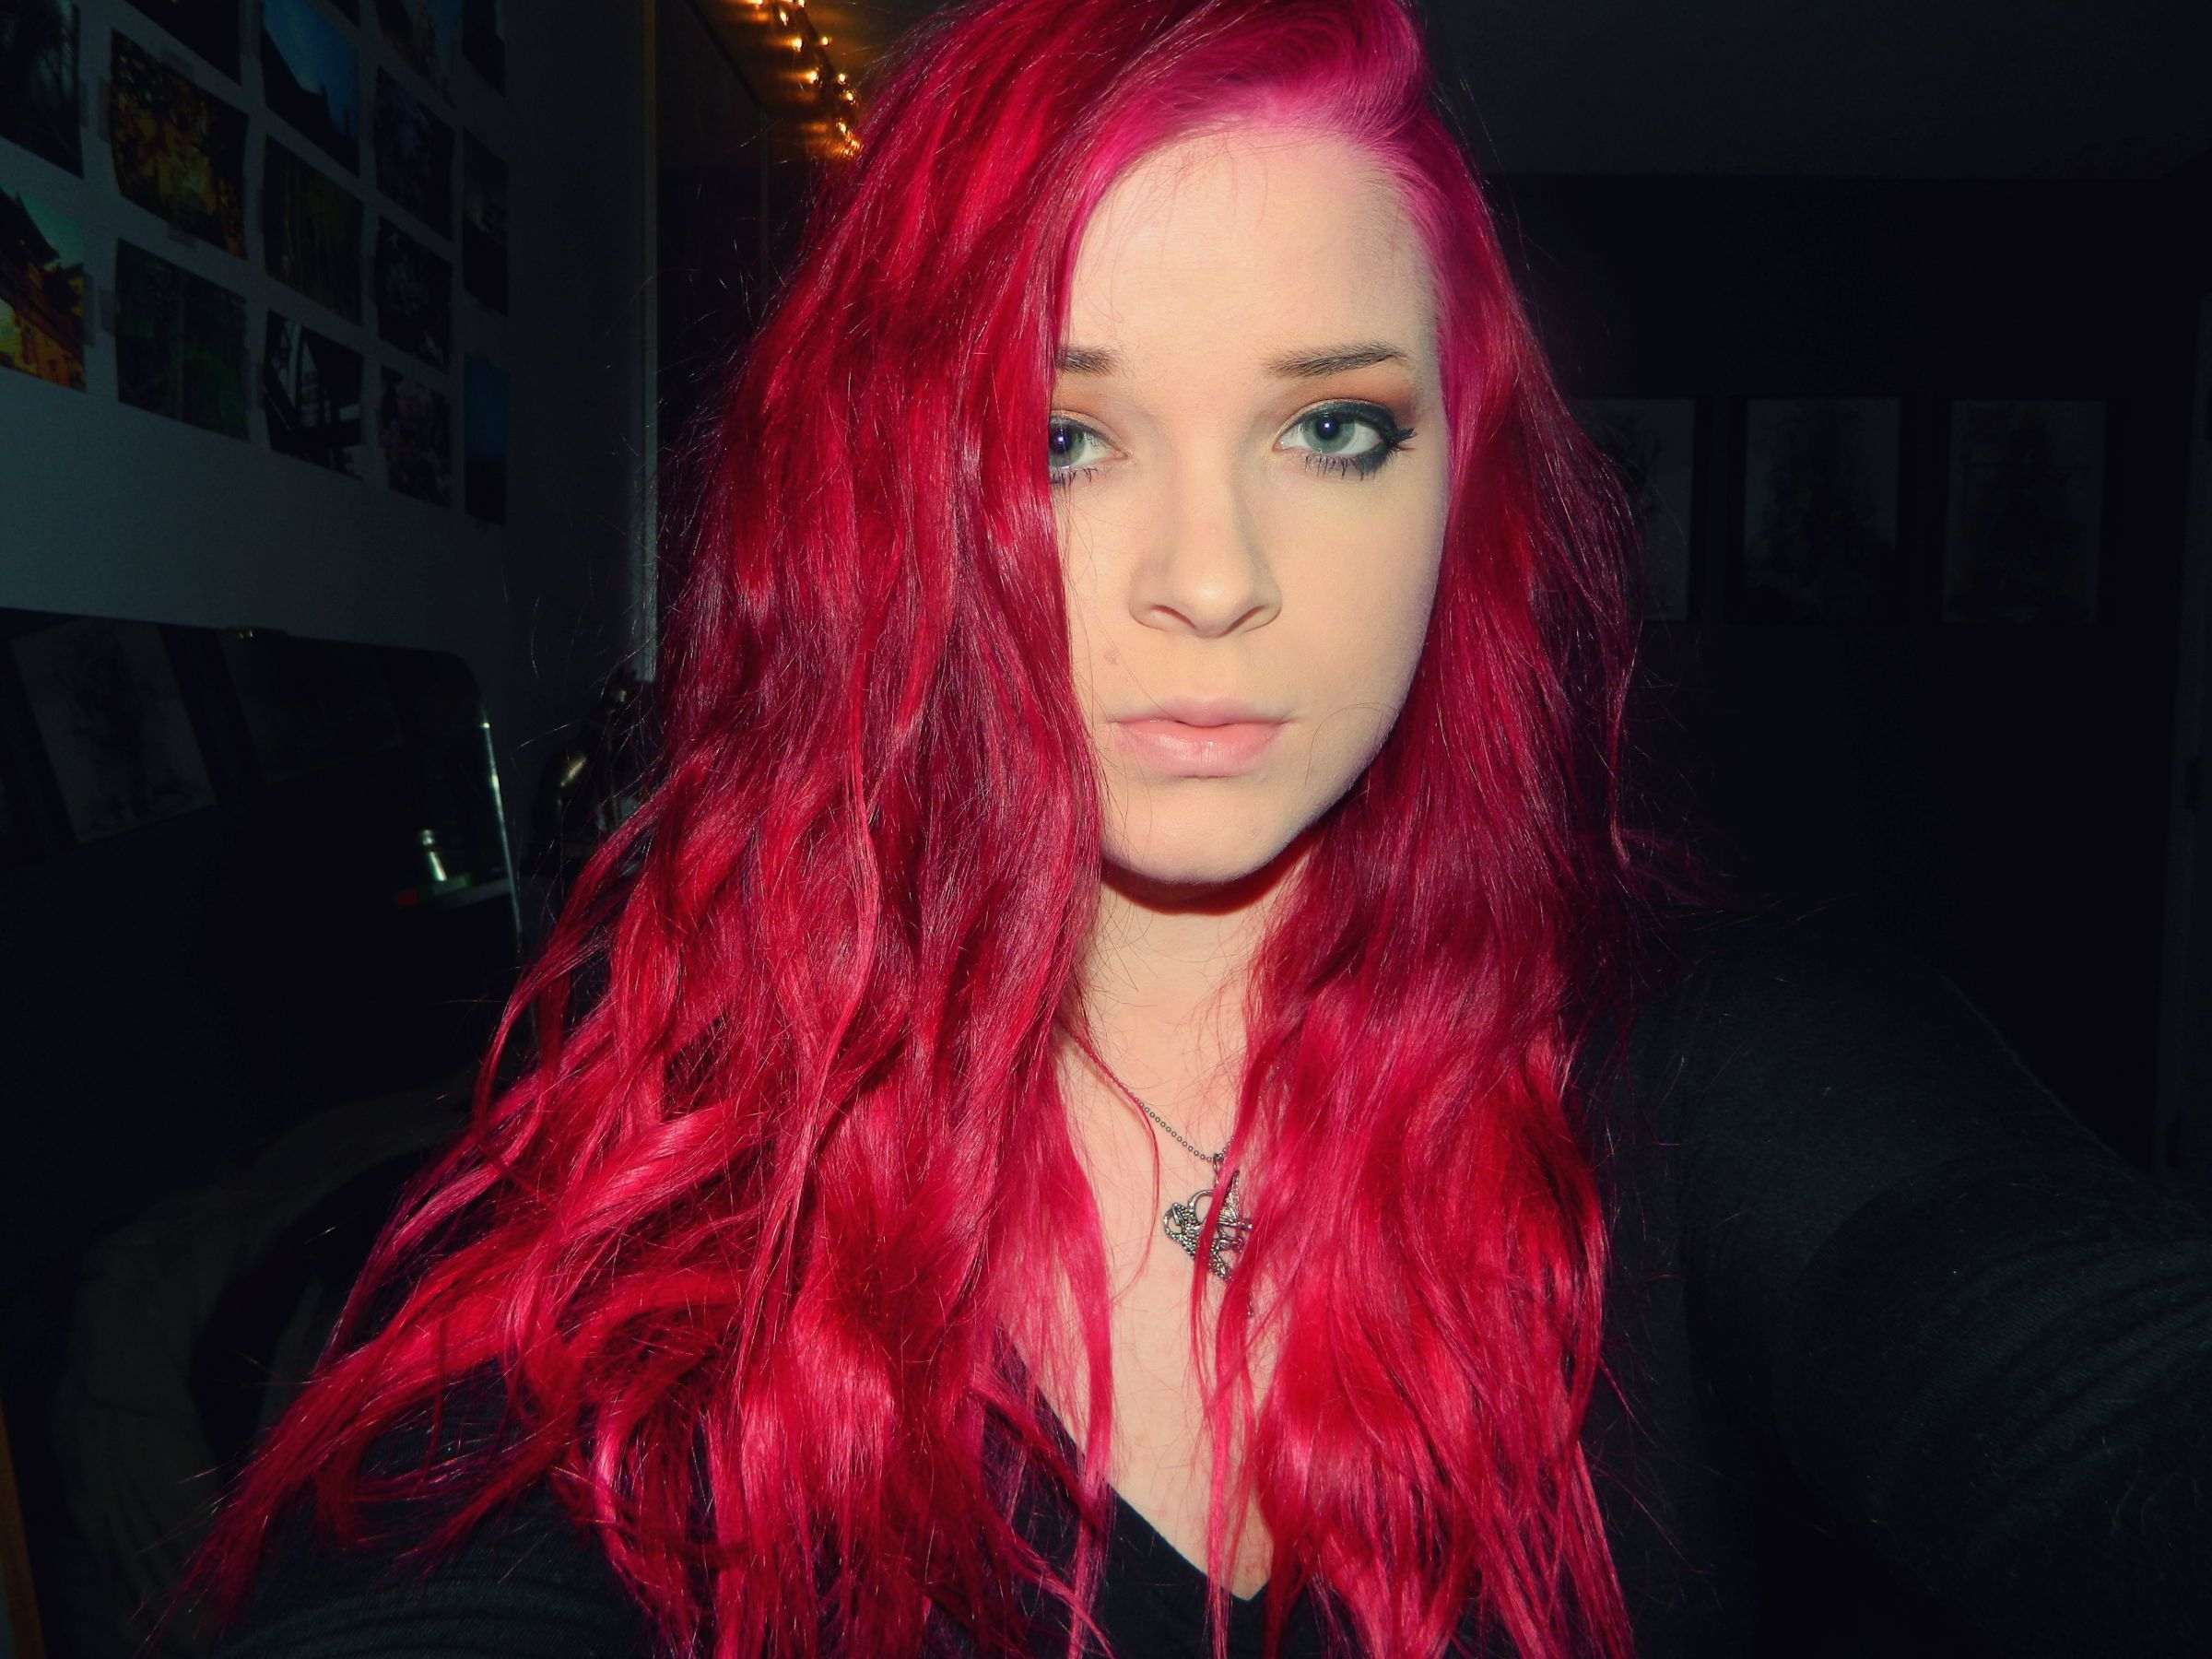 Punky Colour In Red Wine Hair And Makeup Pinterest Punky Color